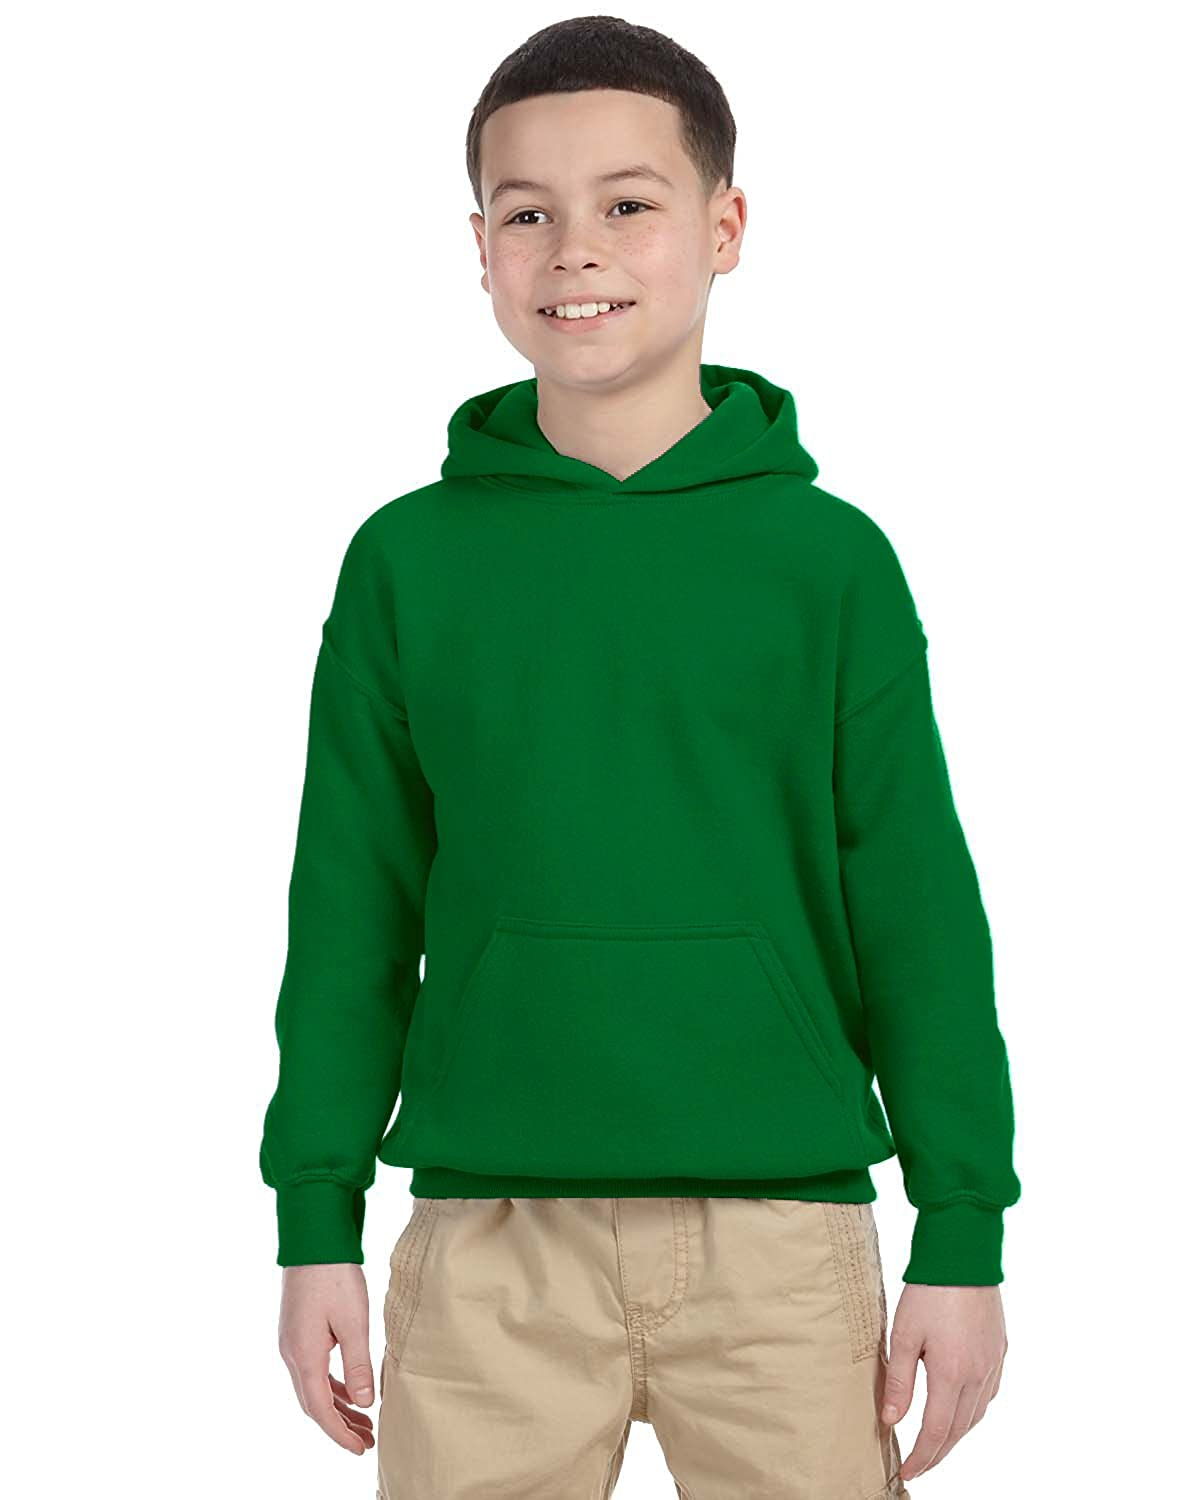 No Sign of Intelligent Life Hoodie for Kids